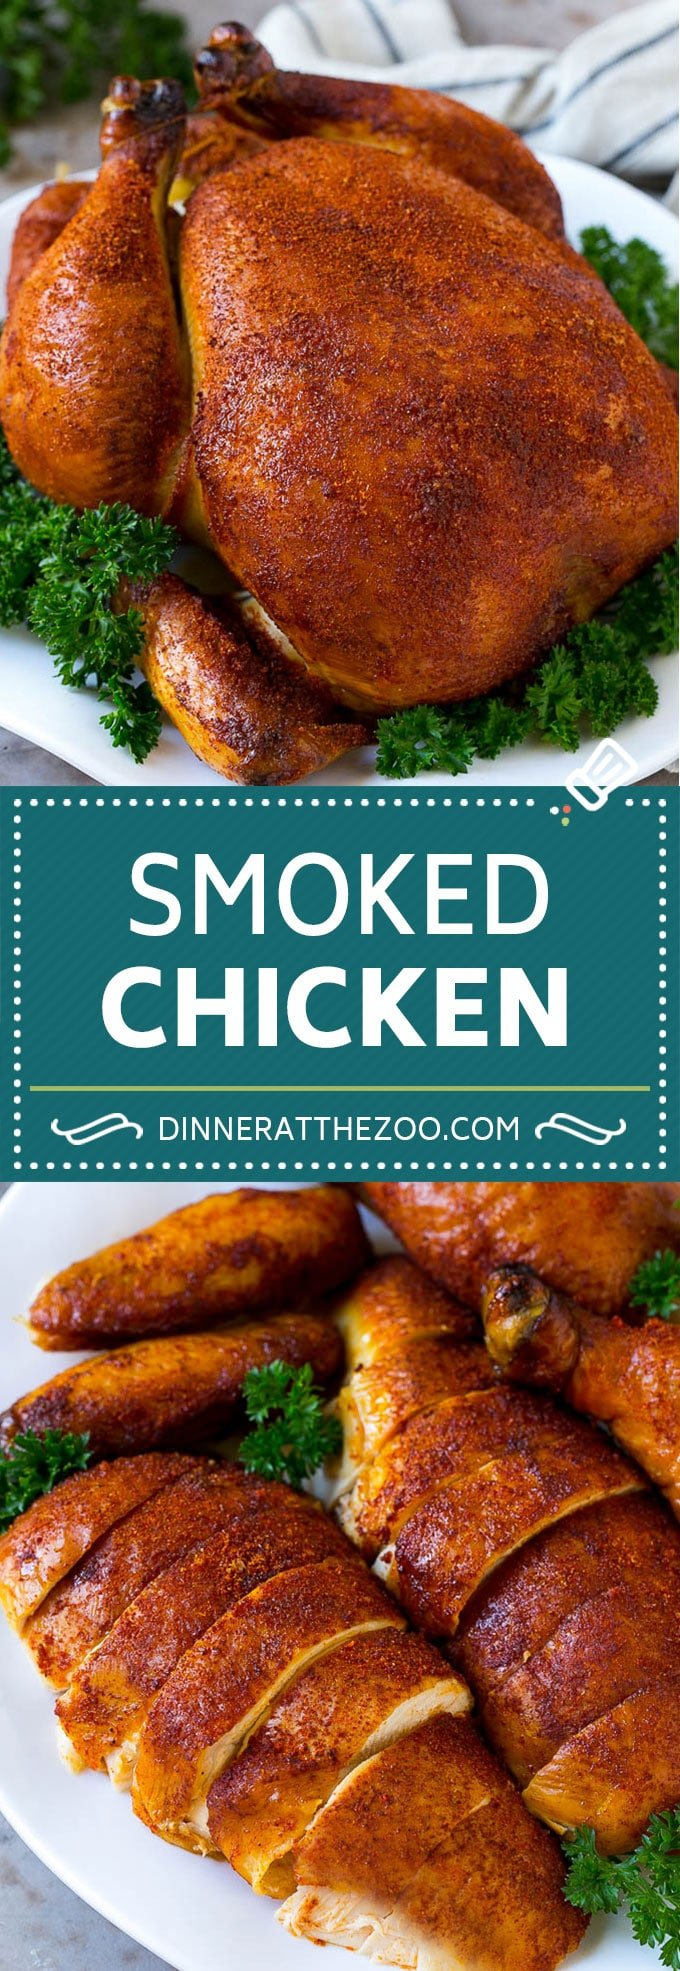 Smoked Chicken Recipe | Whole Smoked Chicken | BBQ Chicken #chicken #smoker #BBQ #dinner #dinneratthezoo #glutenfree #lowcarb